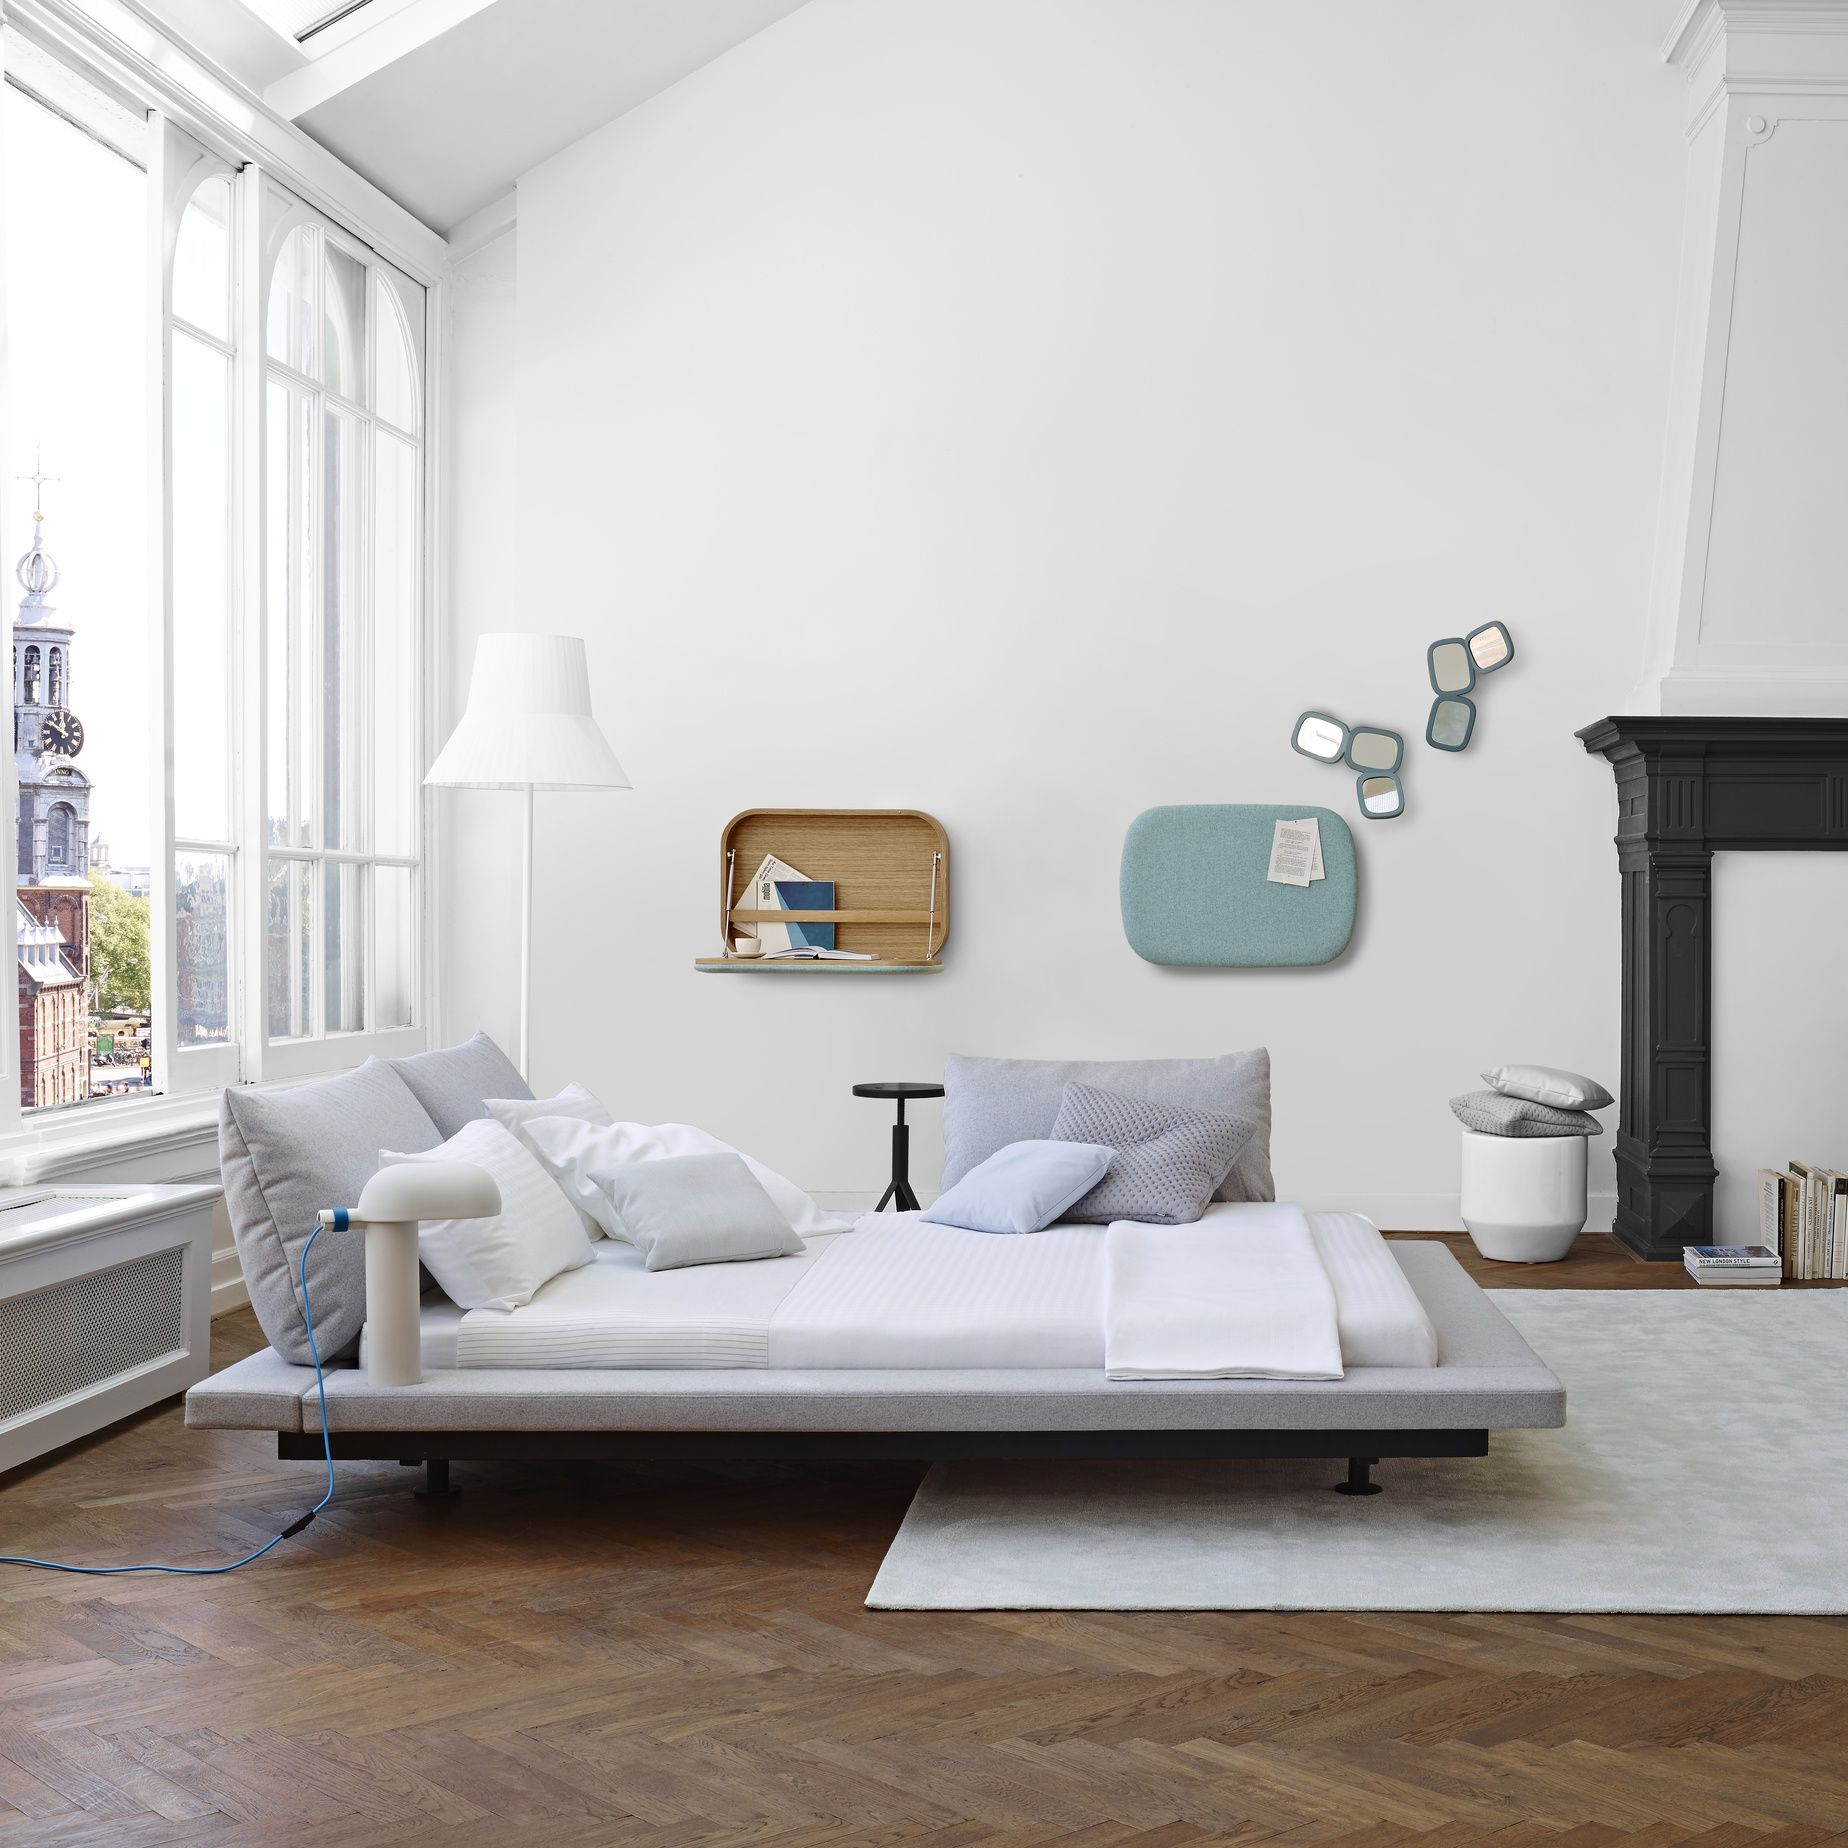 peter maly 2 lits designer peter maly ligne roset ideas for the house pinterest lit. Black Bedroom Furniture Sets. Home Design Ideas